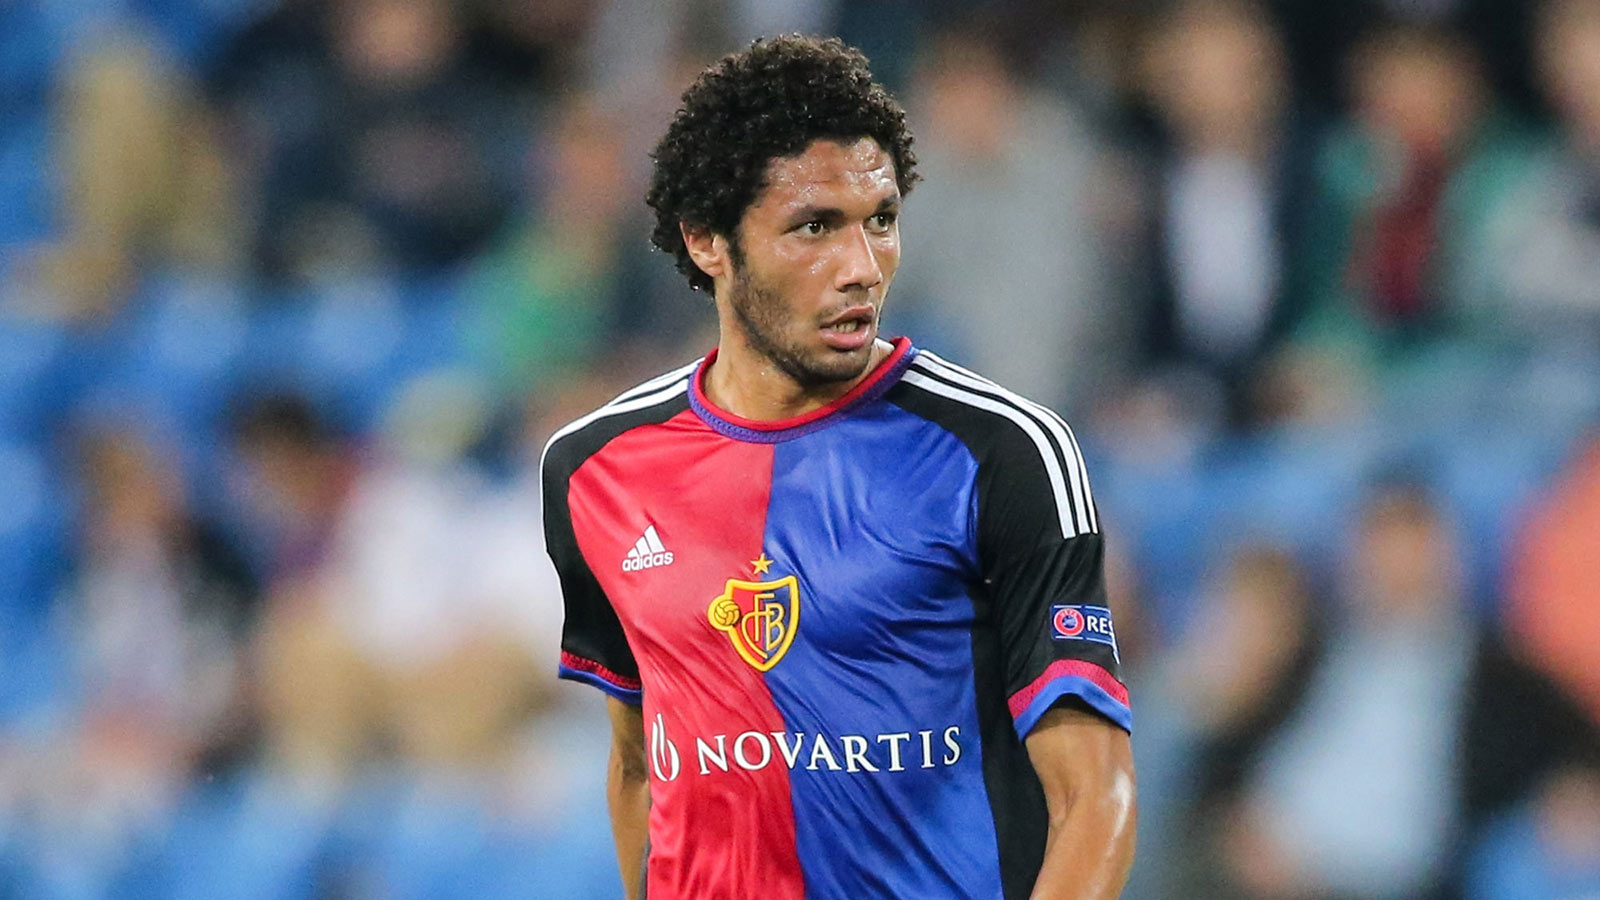 Sources: Arsenal close to signing Elneny from Basel